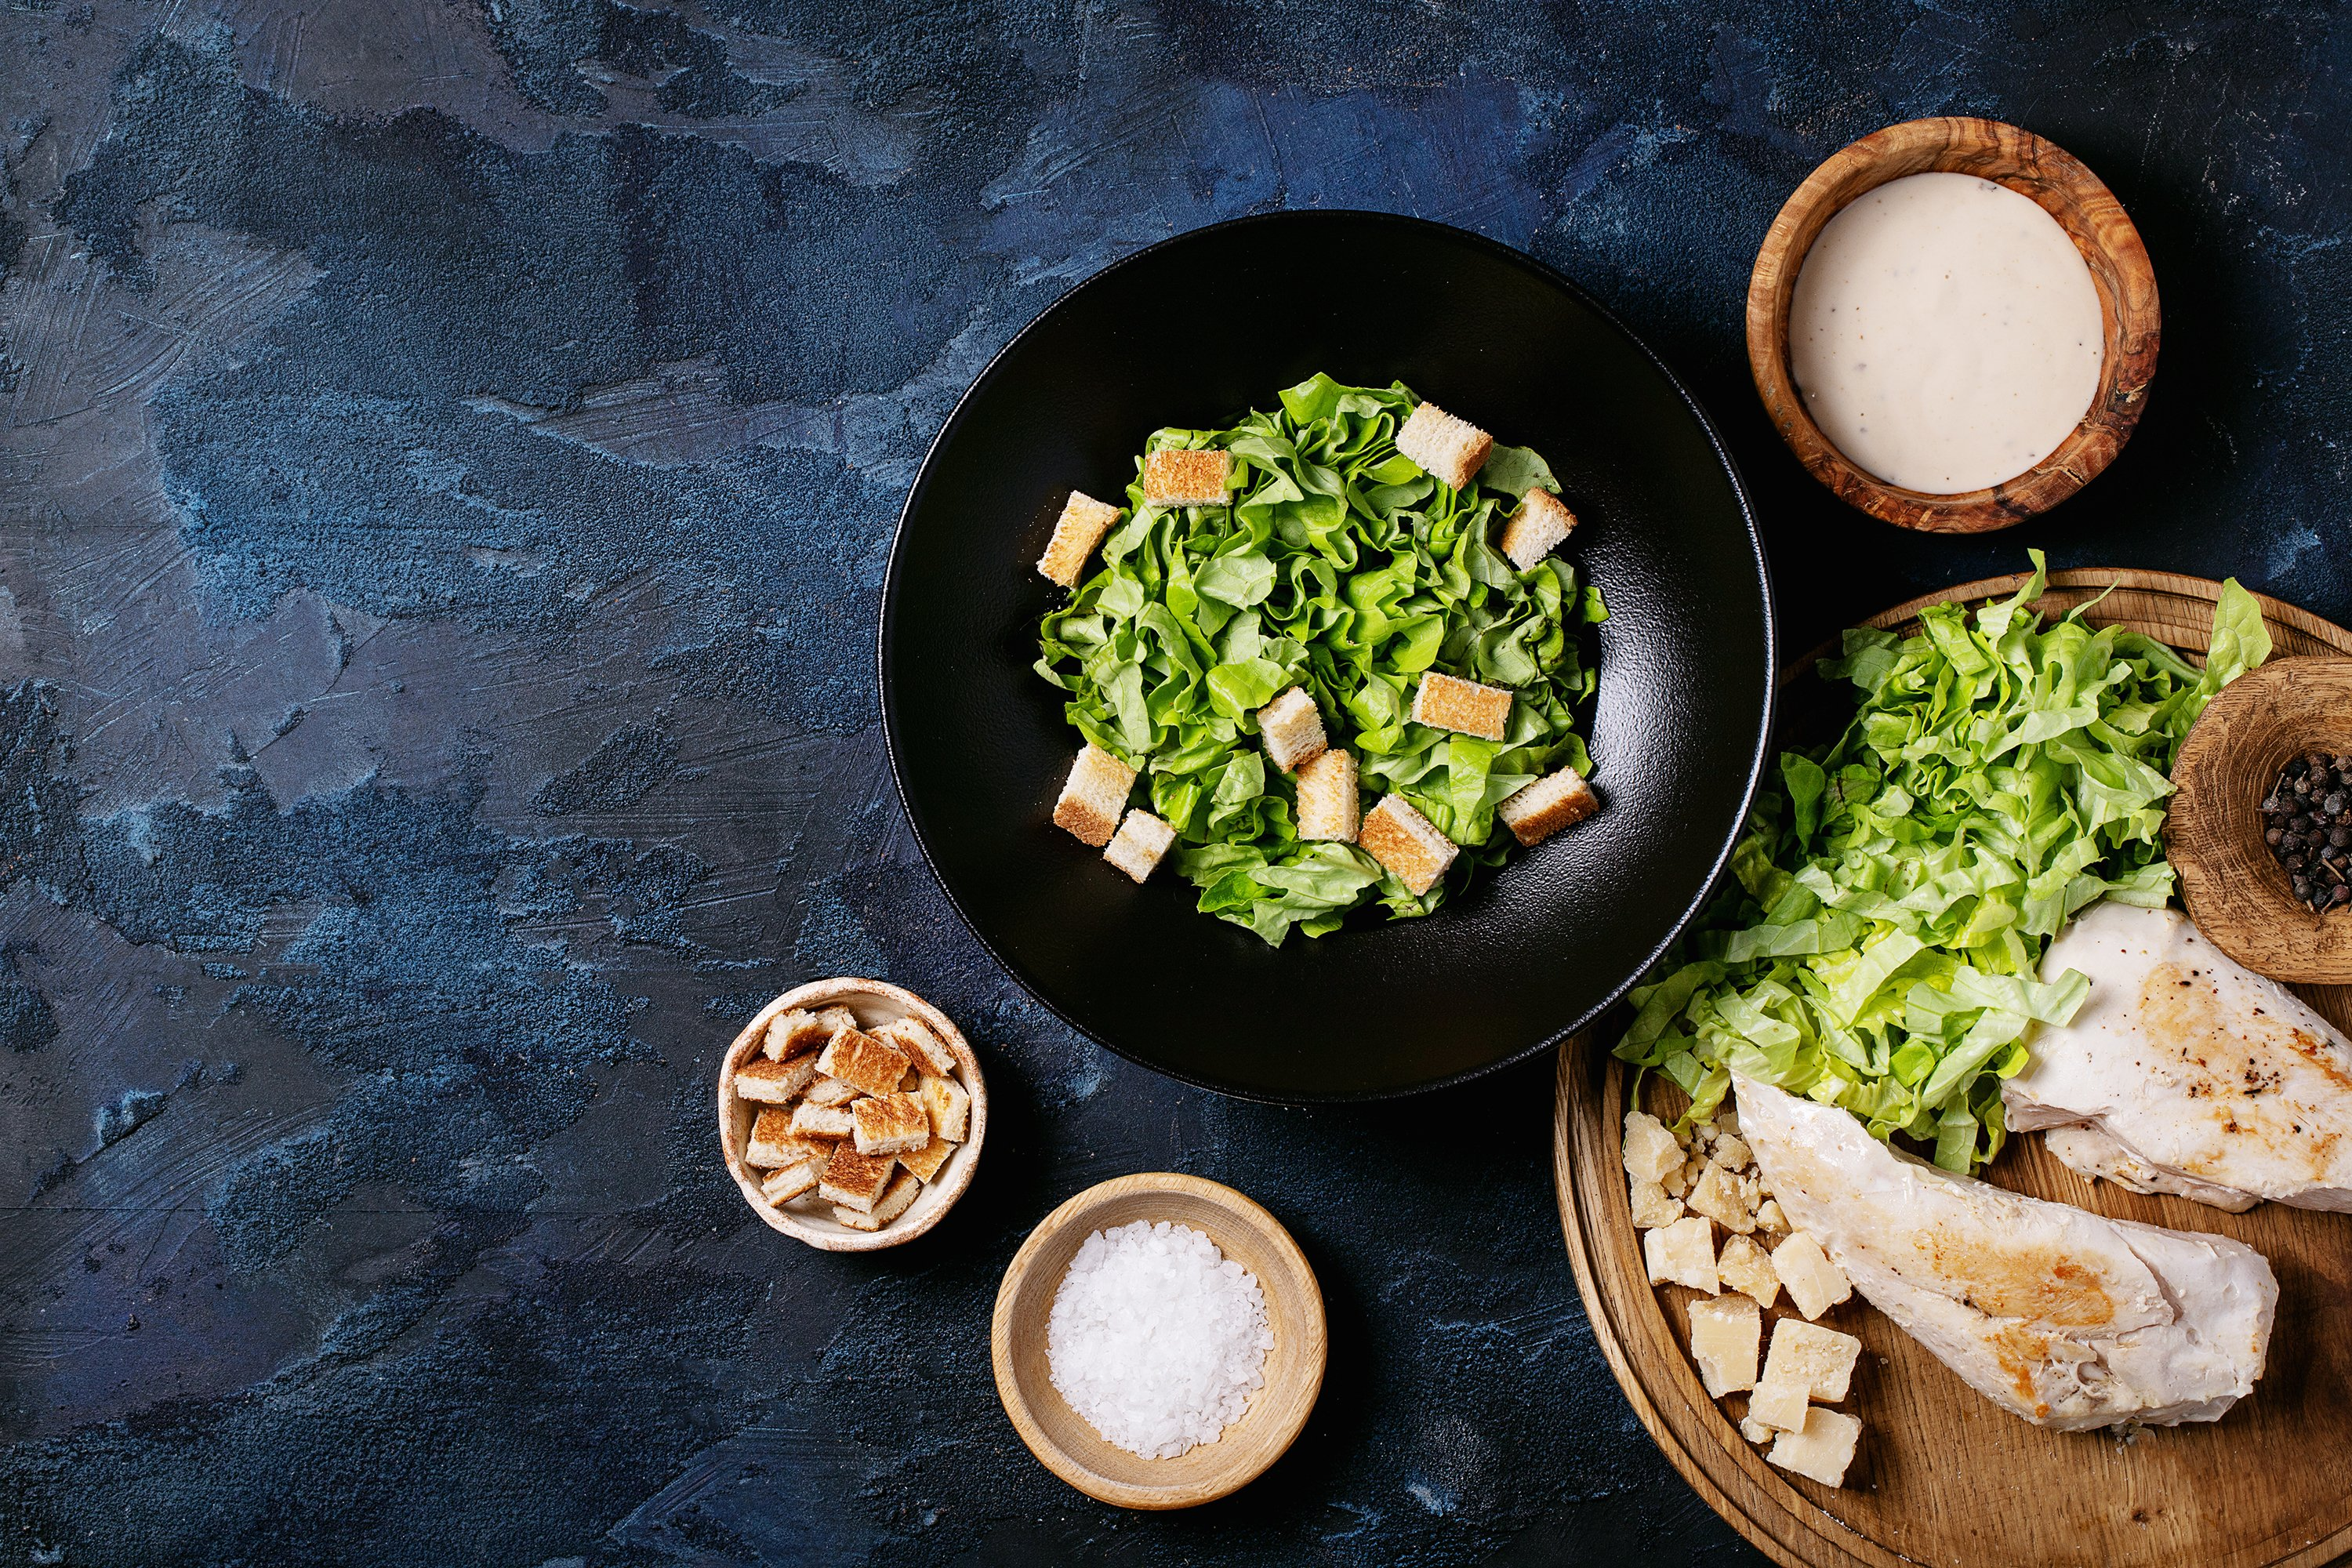 Ingredients for making caesar salad example image 1